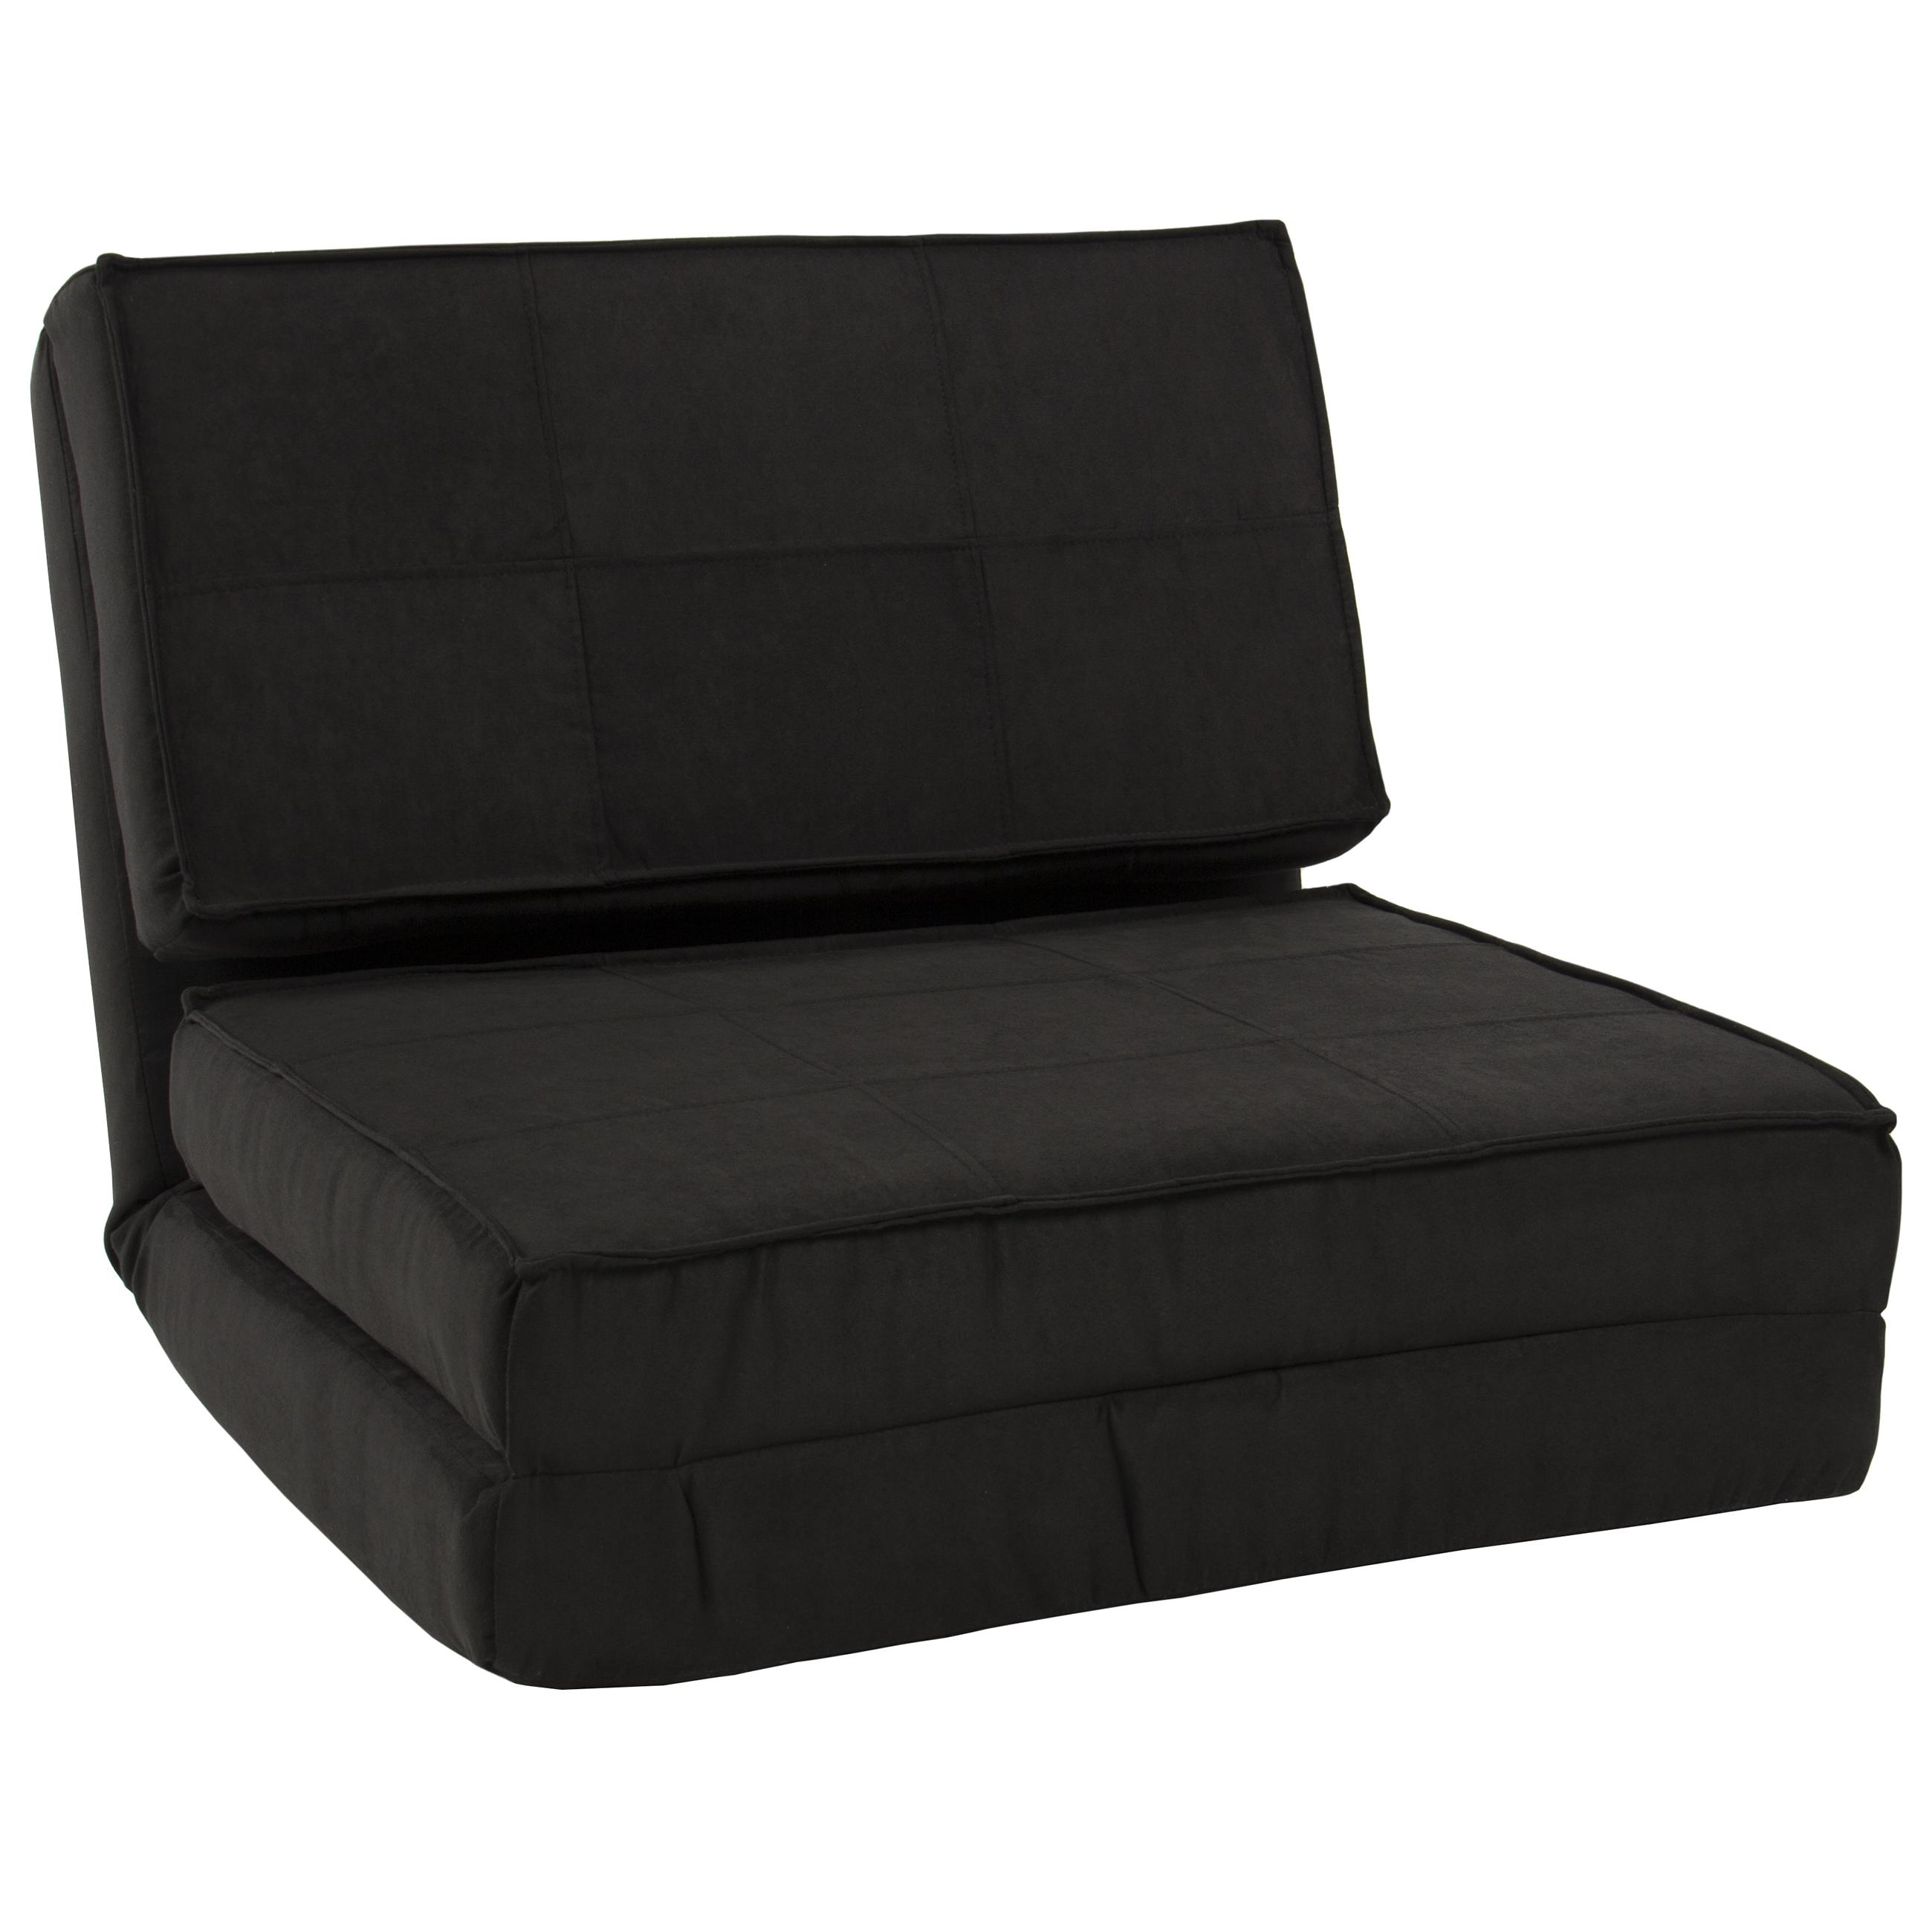 Best Choice Products Convertible Sleeper Chair Bed (Black With Regard To Convertible Sofa Chair Bed (Image 4 of 20)